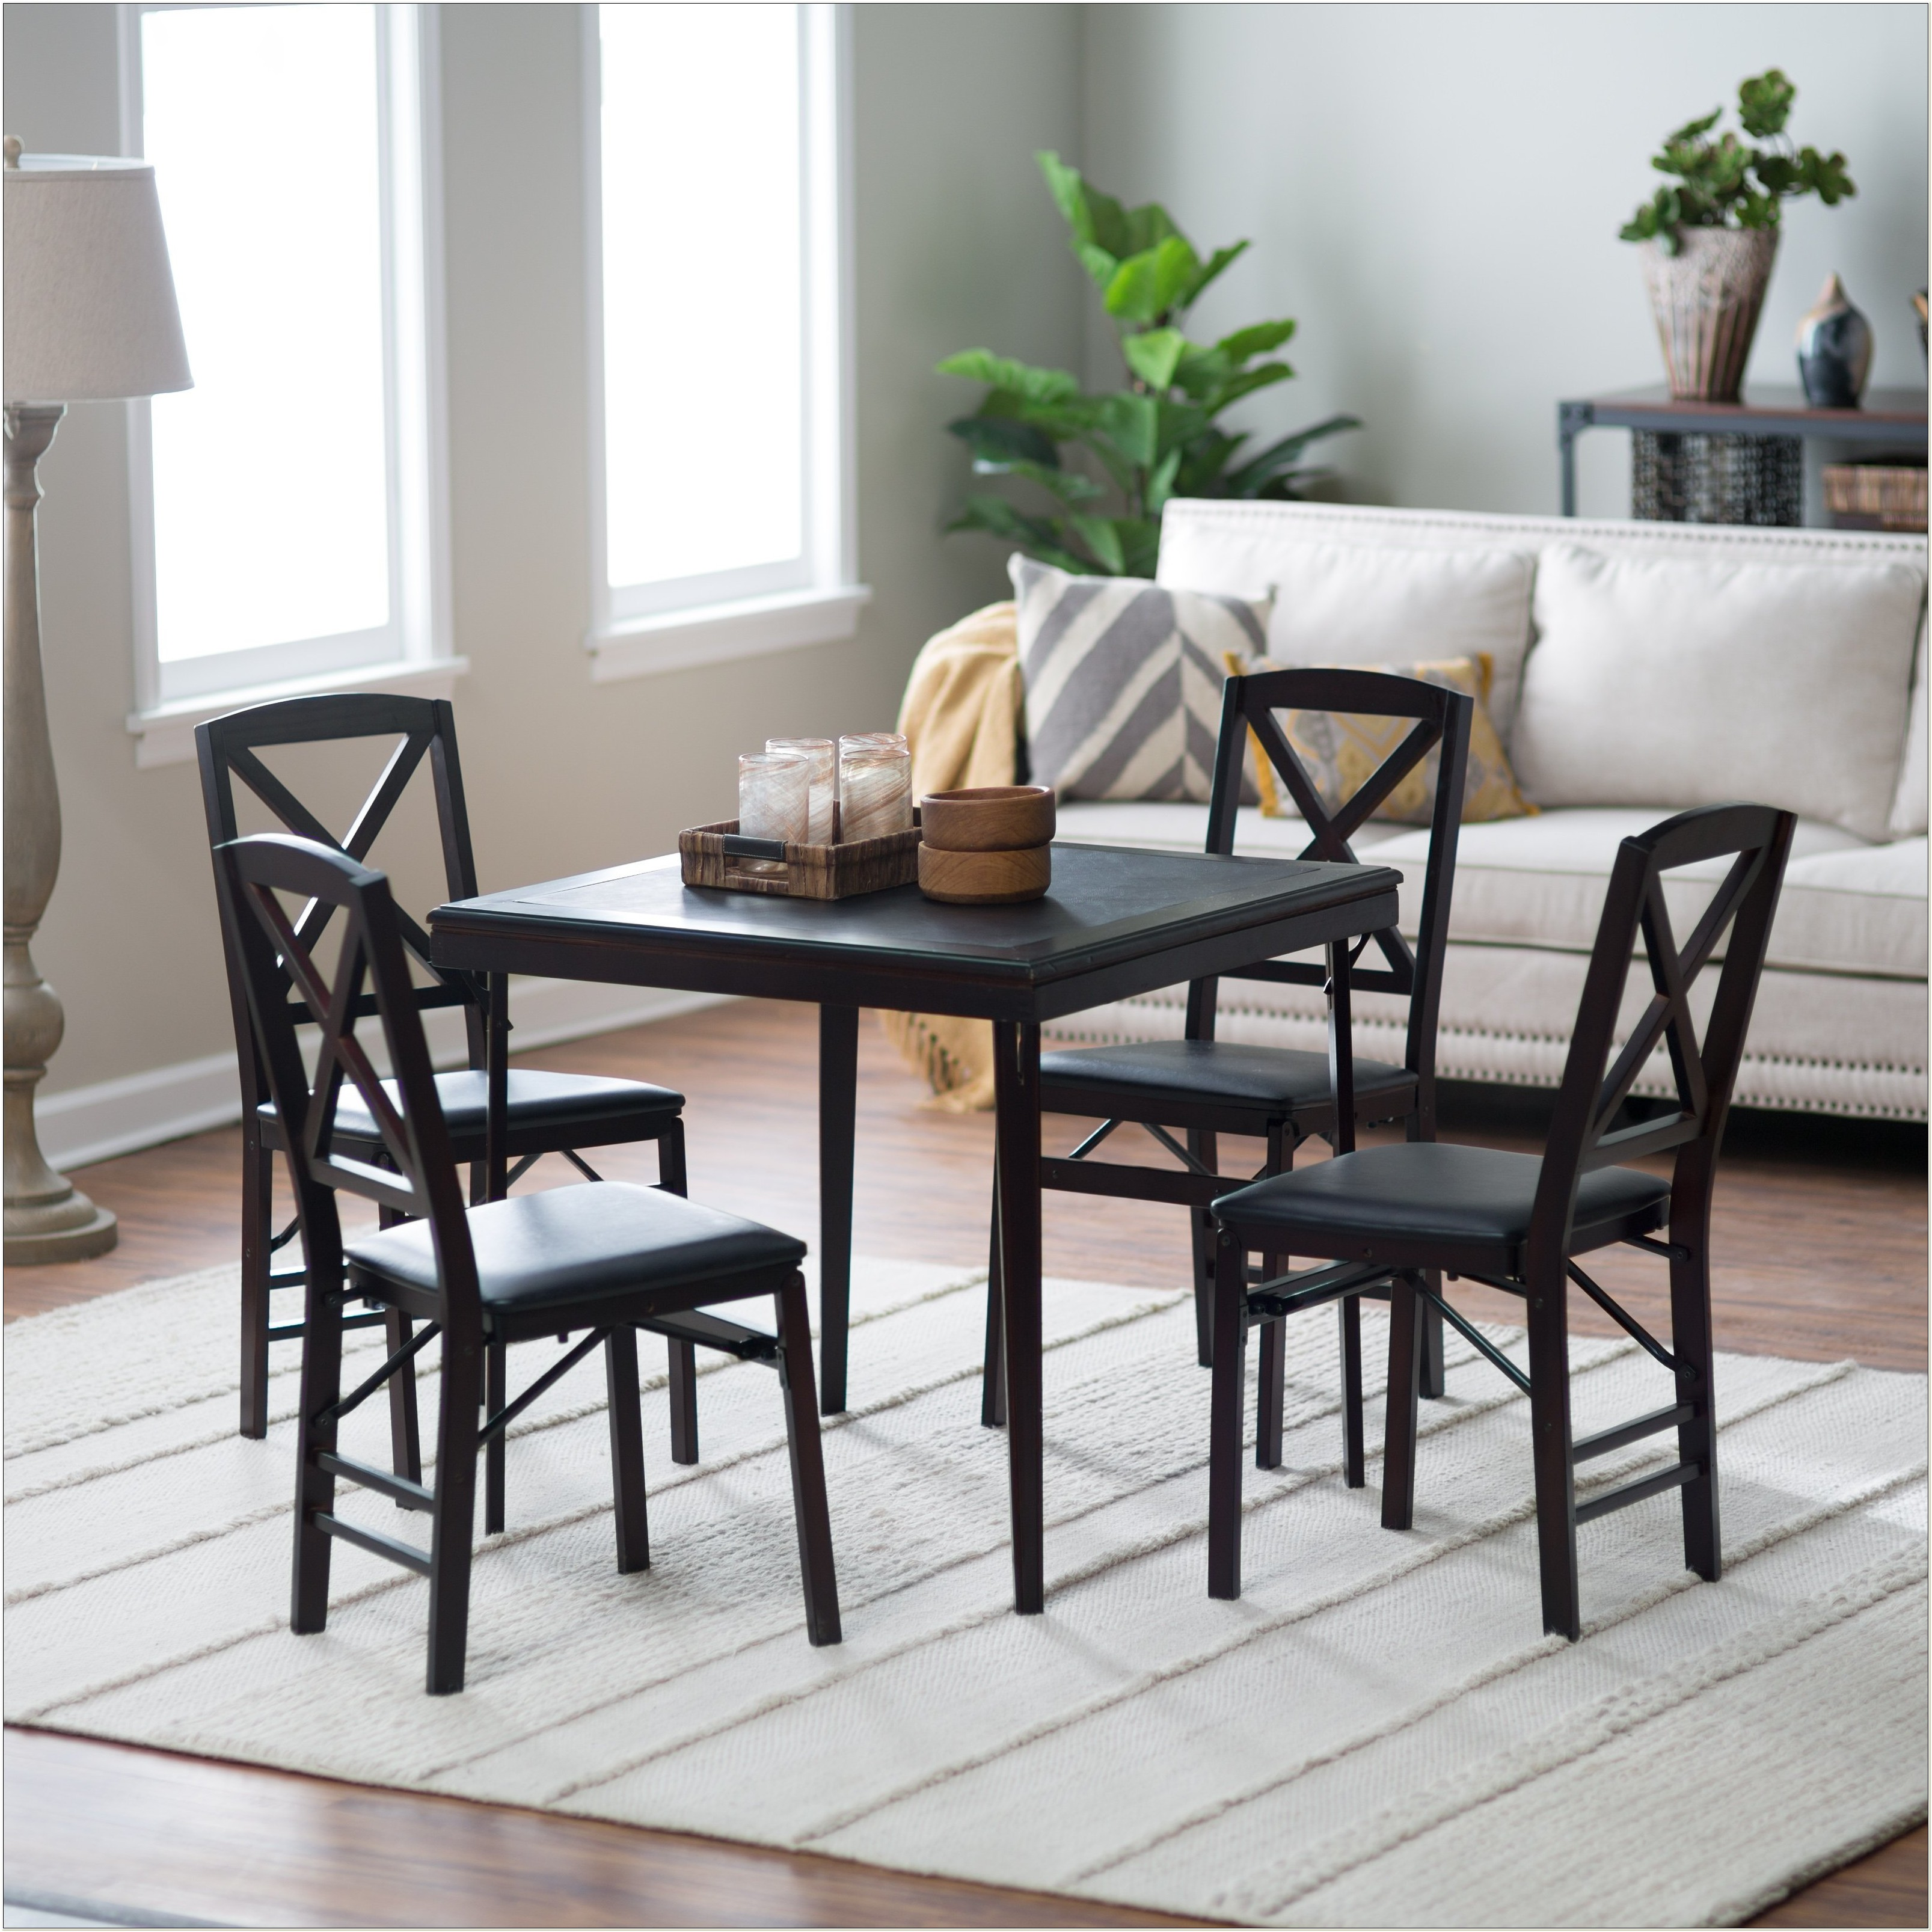 Cosco Wood Folding Table And Chairs